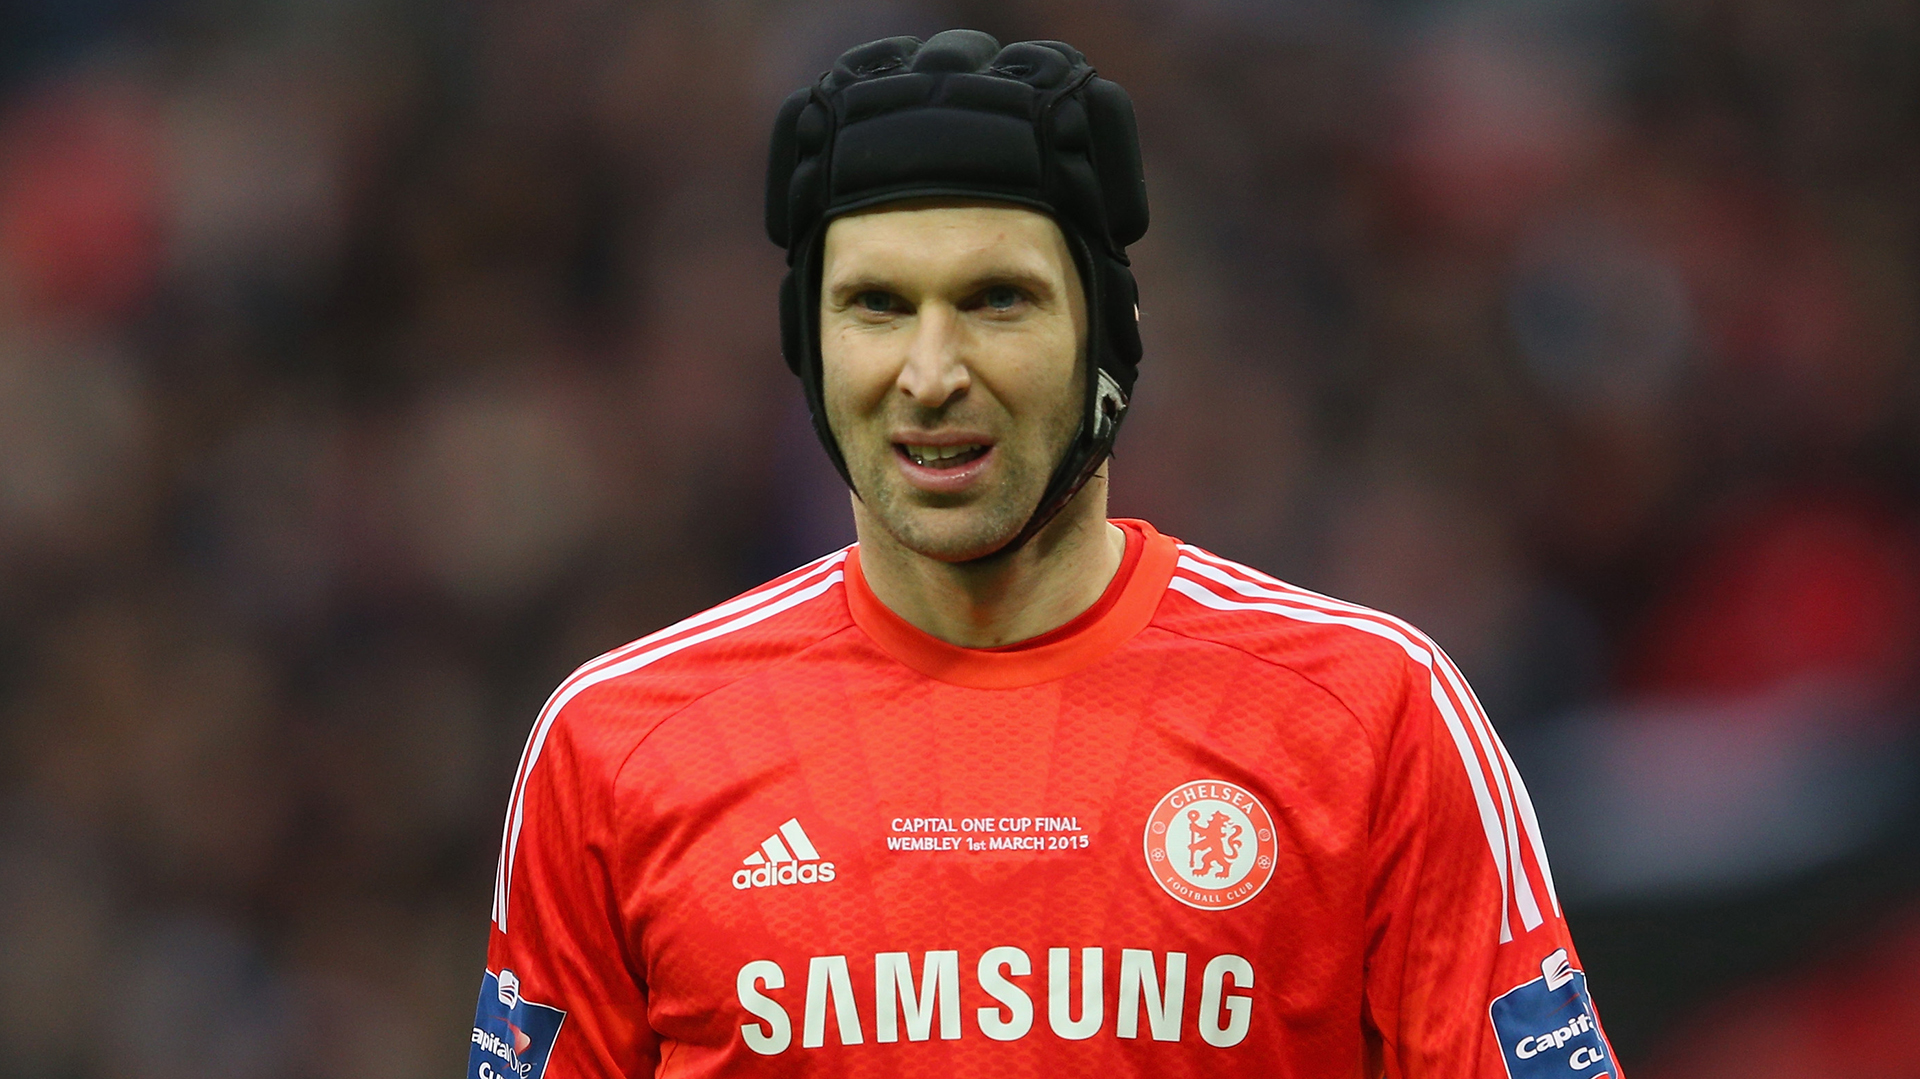 Cech makes shock Chelsea comeback after inclusion in Premier League 25-man  squad as 'emergency cover' | Goal.com